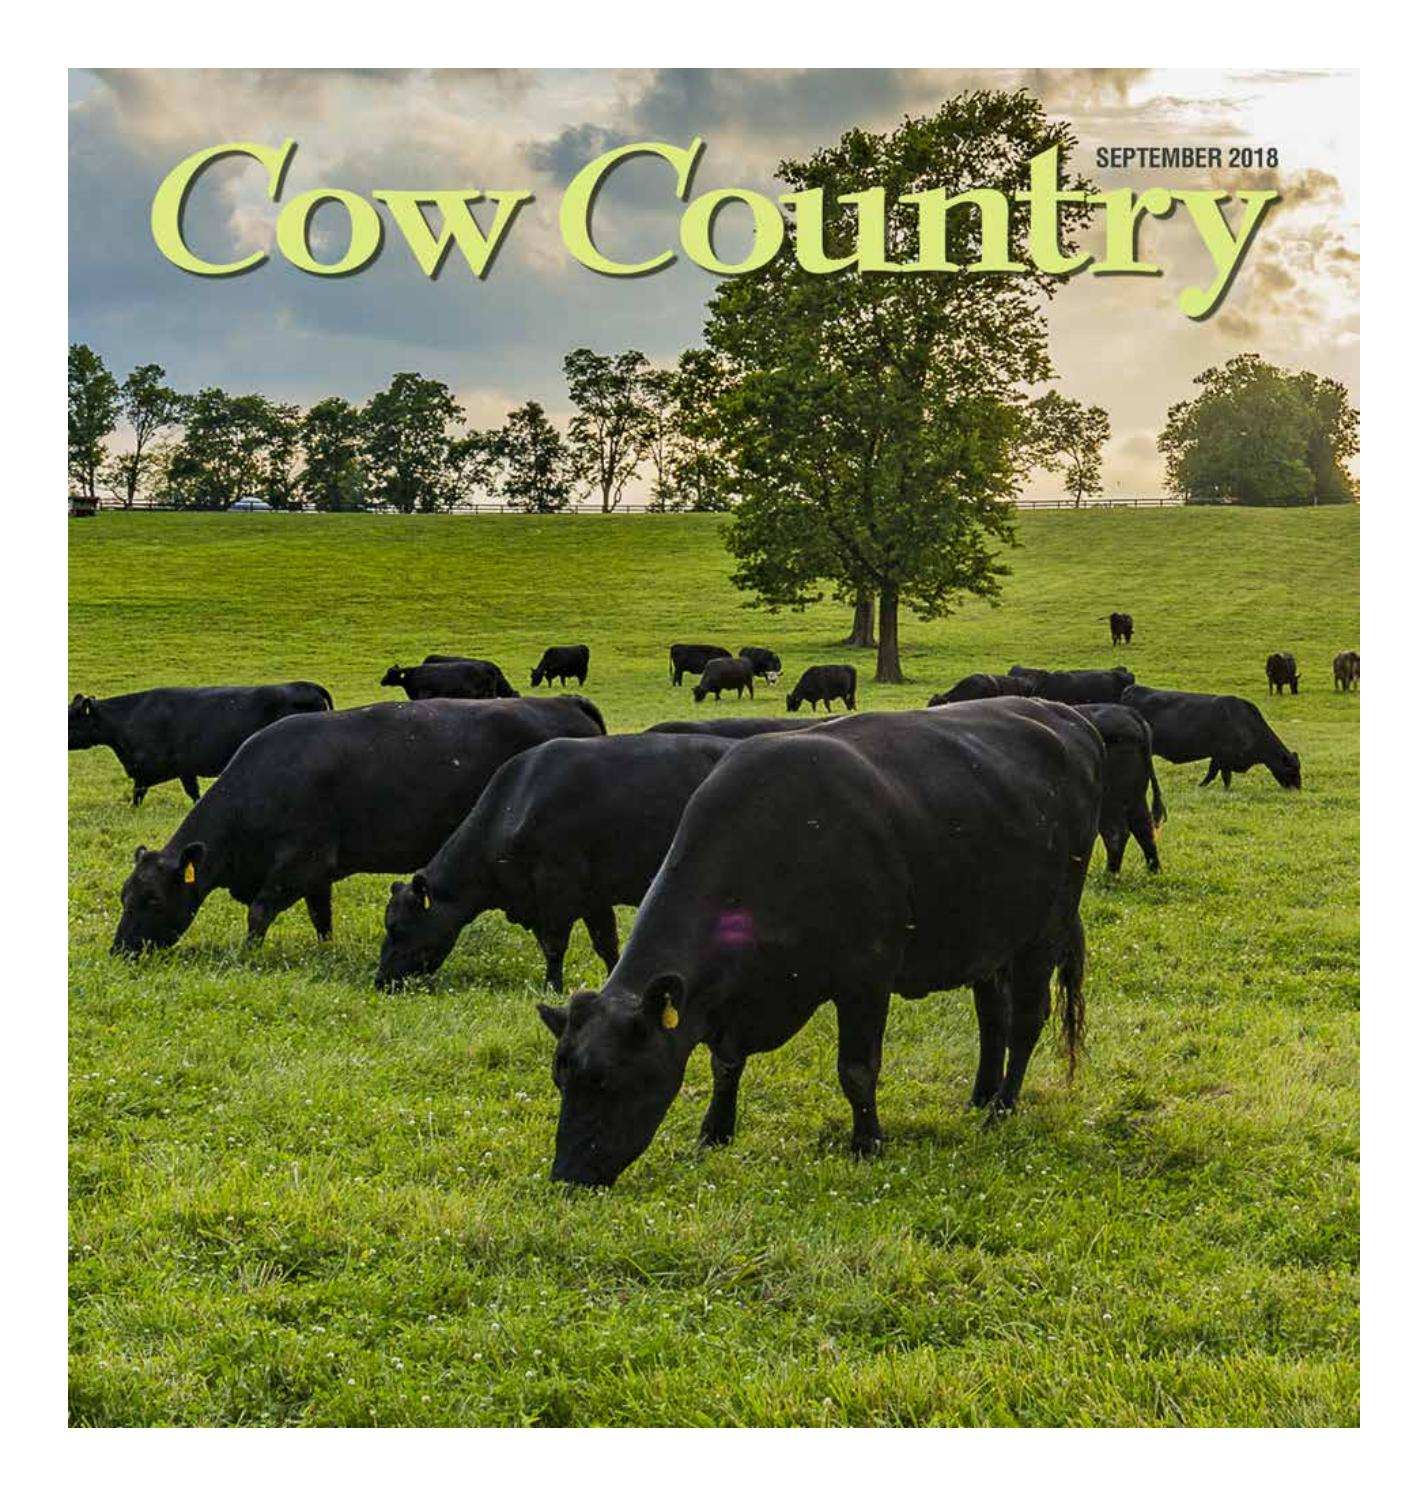 Cow country news september 2018